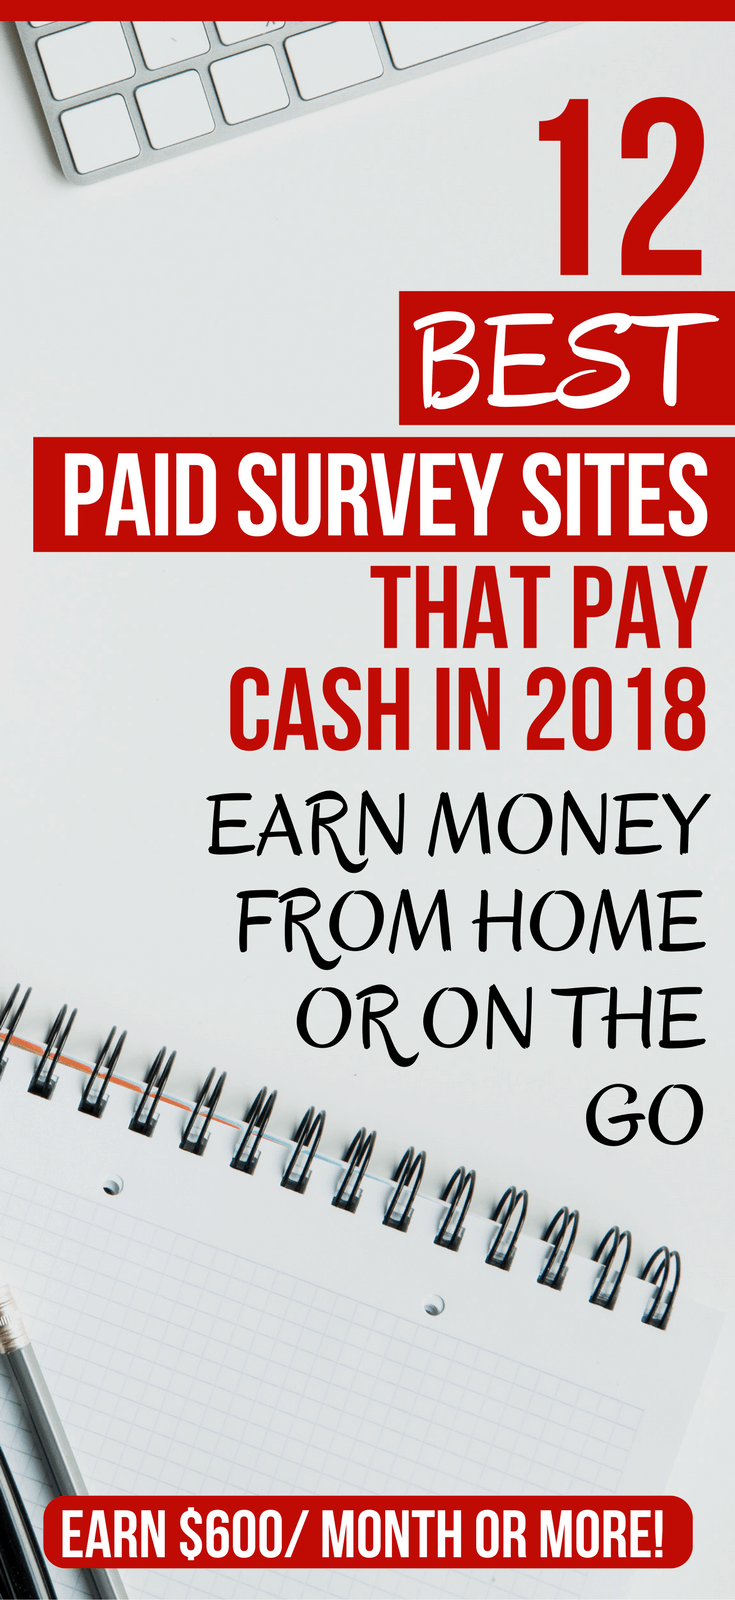 12 Best Paid Survey Sites That Pay Cash in 2018: Earn $500+ A Month From Home Or On The Go  paid survey sites | paid surveys legit | paid surveys apps | paid surveys earn money extra cash | make money with surveys  #makemoney #makemoneyonline #workfromhome